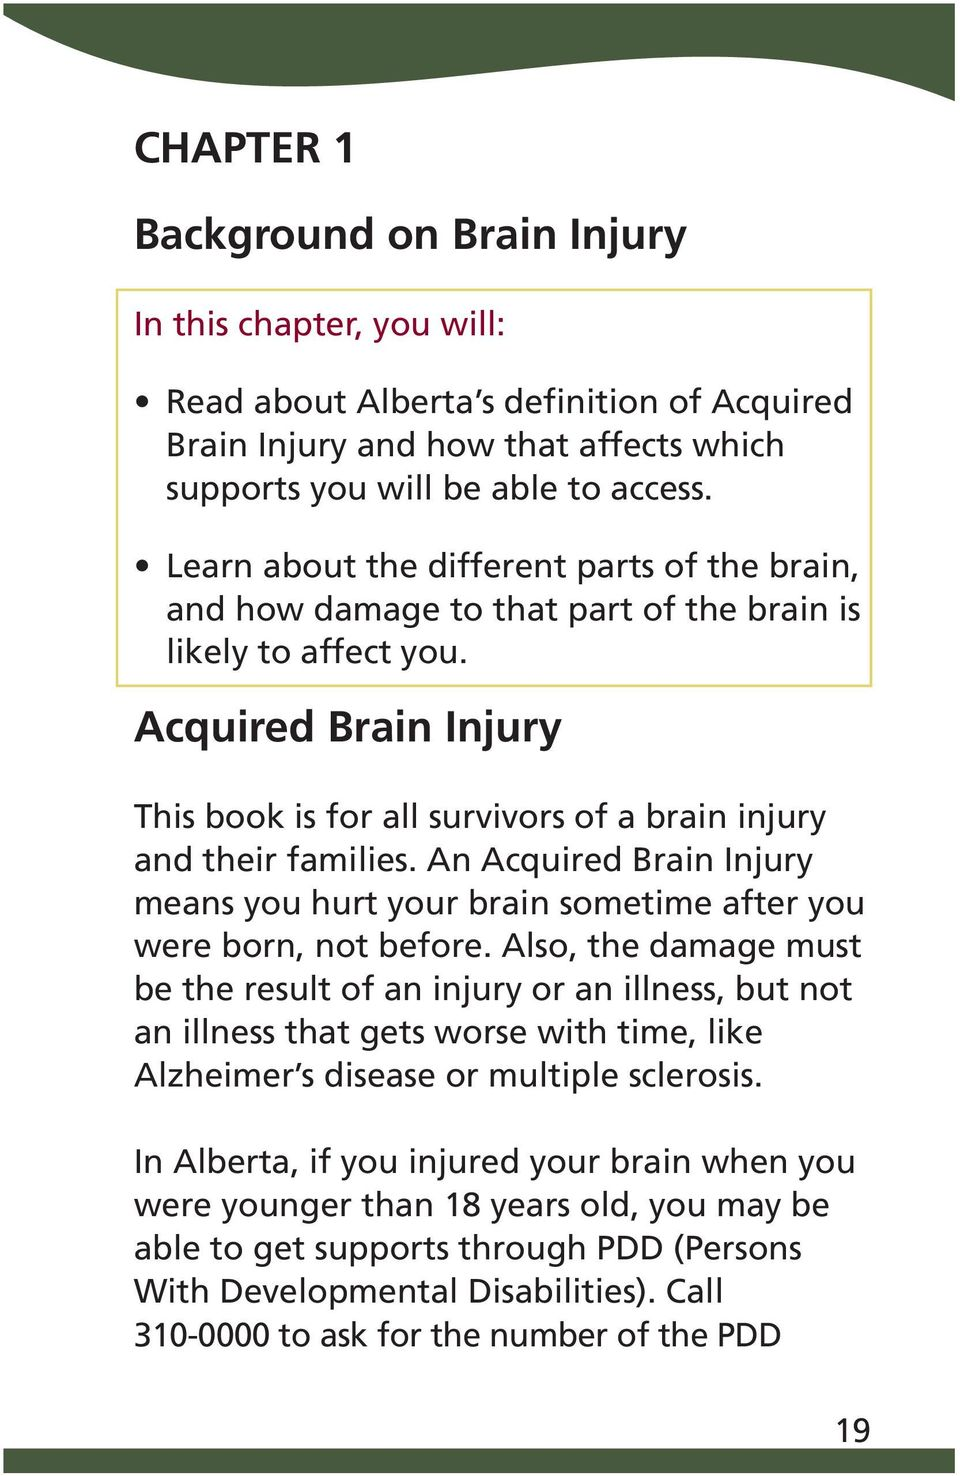 Acquired Brain Injury This book is for all survivors of a brain injury and their families. An Acquired Brain Injury means you hurt your brain sometime after you were born, not before.